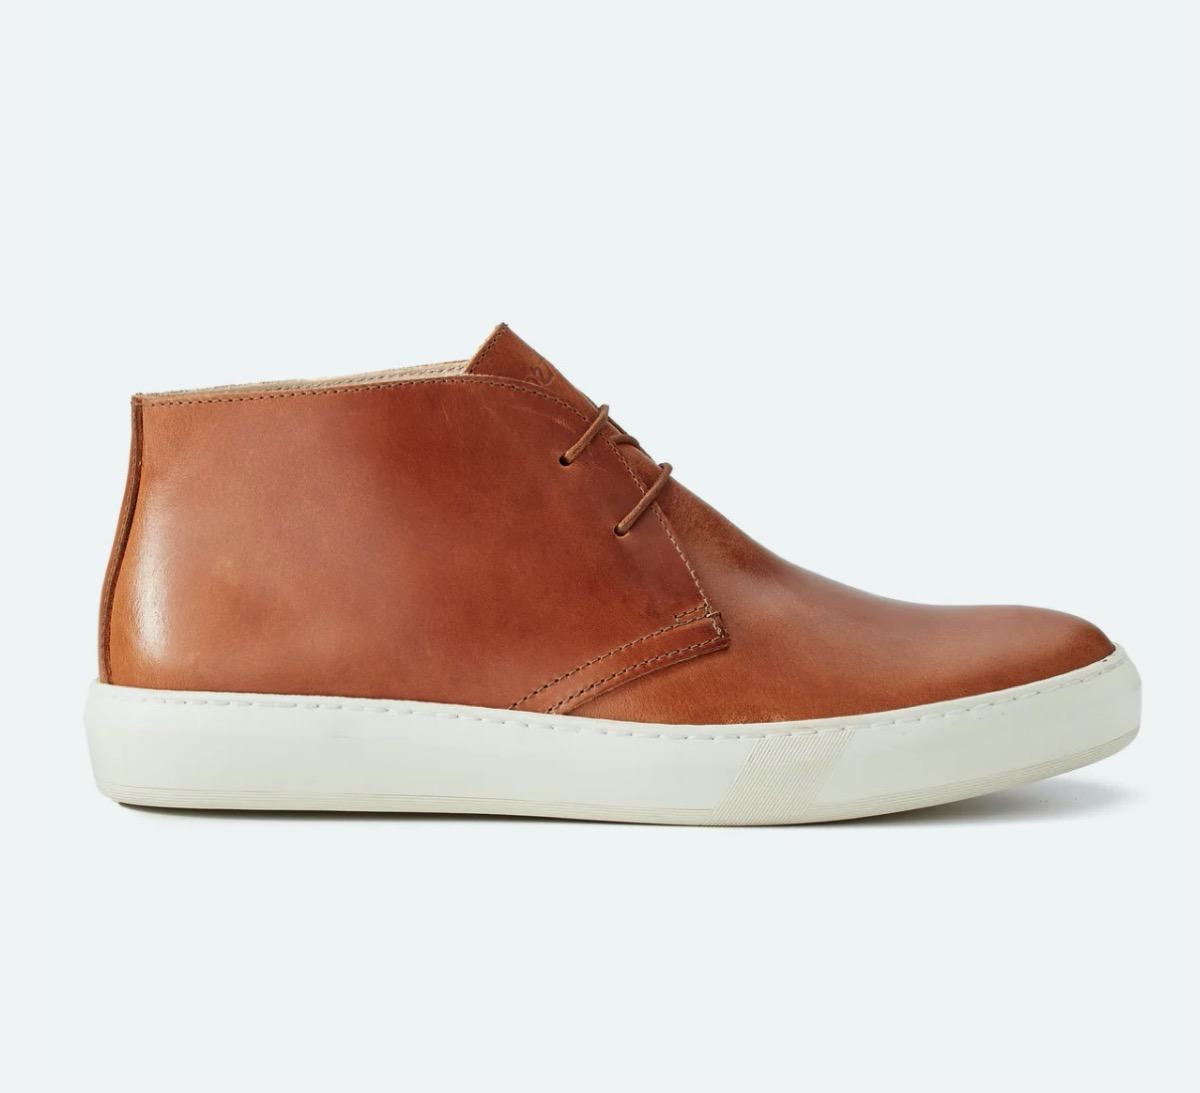 low brown leather boots with laces and white soles